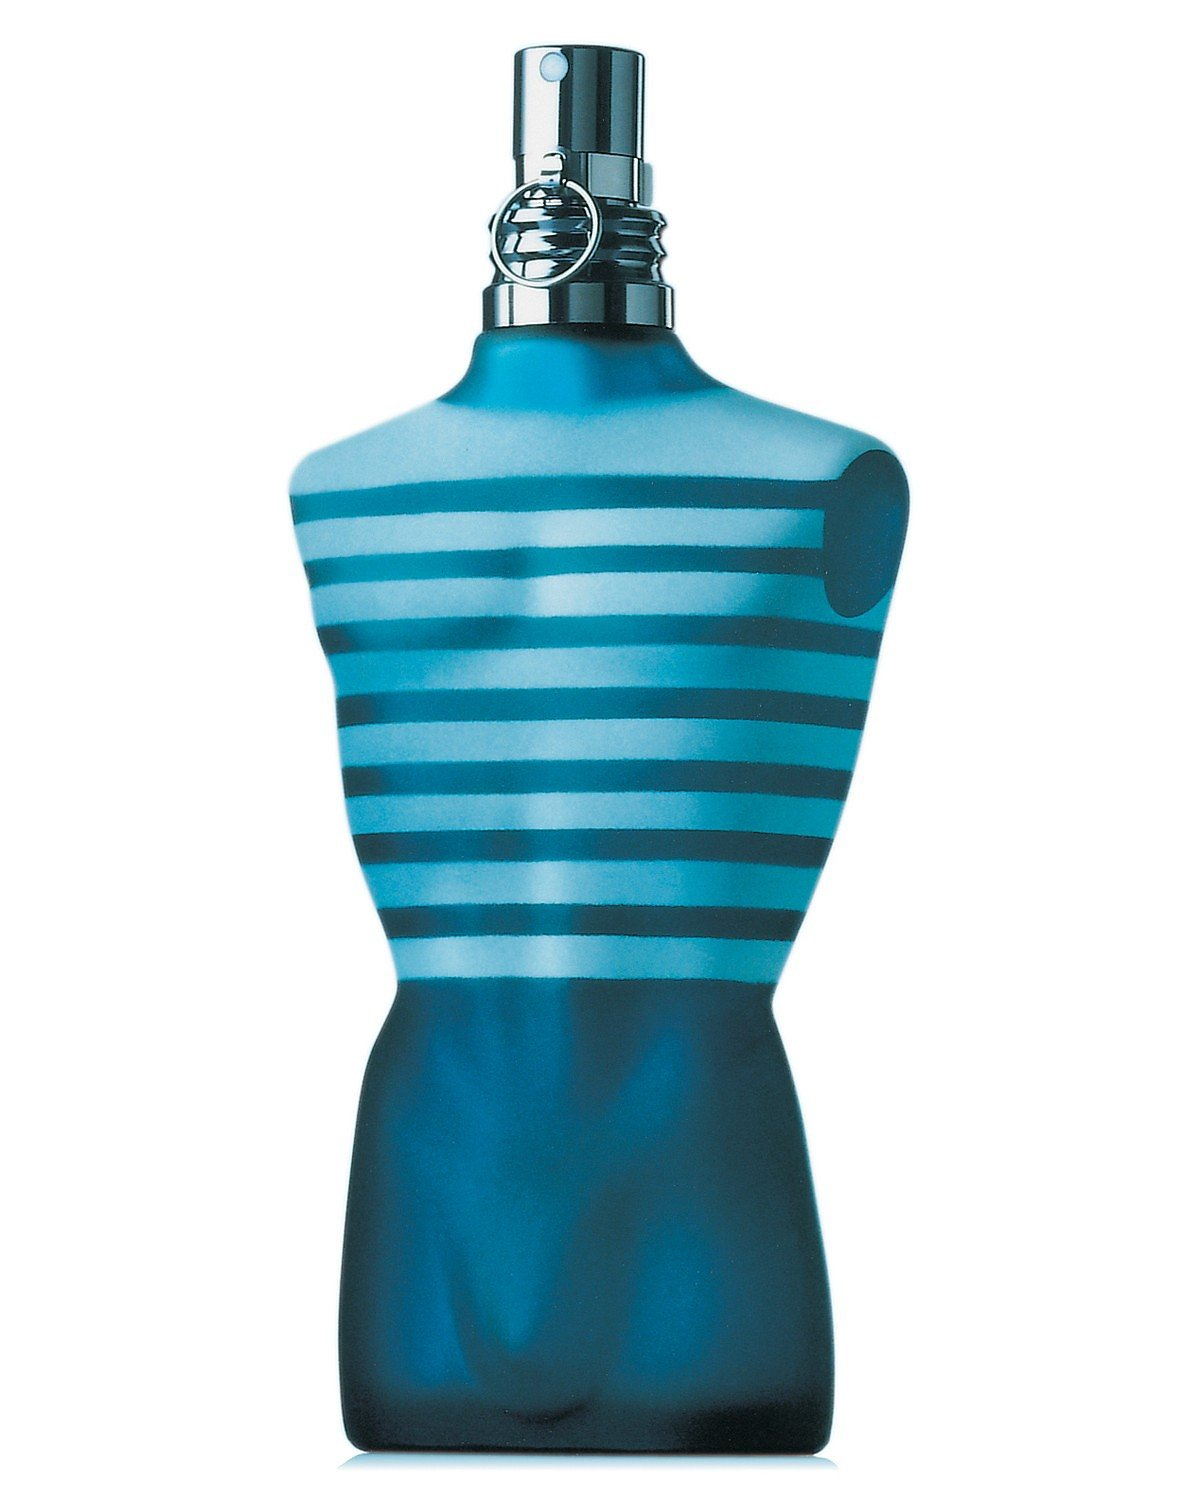 Jean Paul Gaultier - Le Male 200 ml (STOR STR)